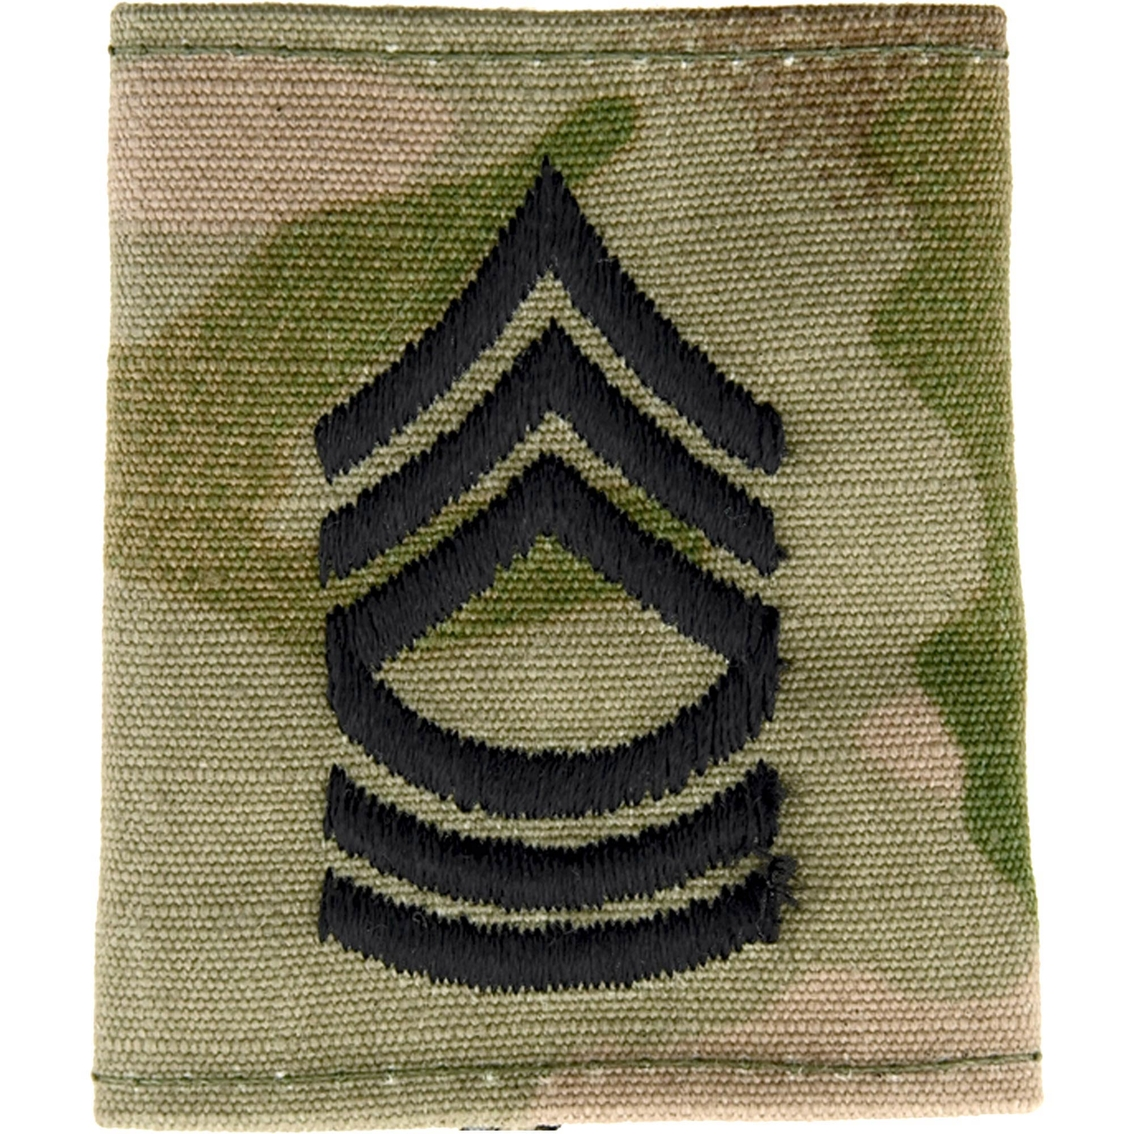 Army Rank Master Sergeant (msg) Gore.